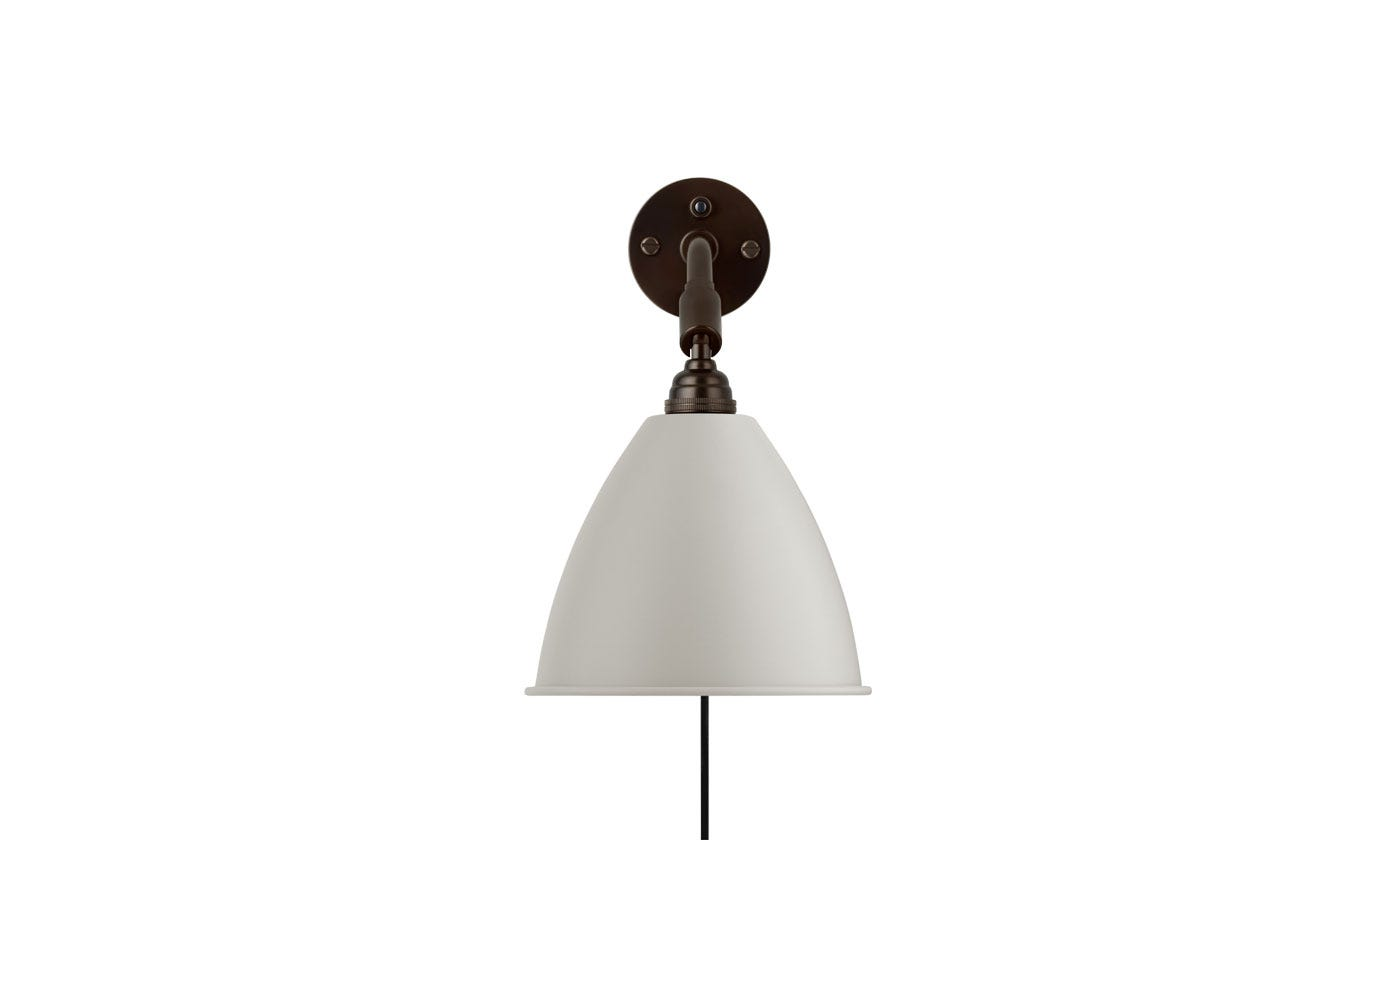 As Shown: BL7 Wall Light Black Brass Base with White Shade